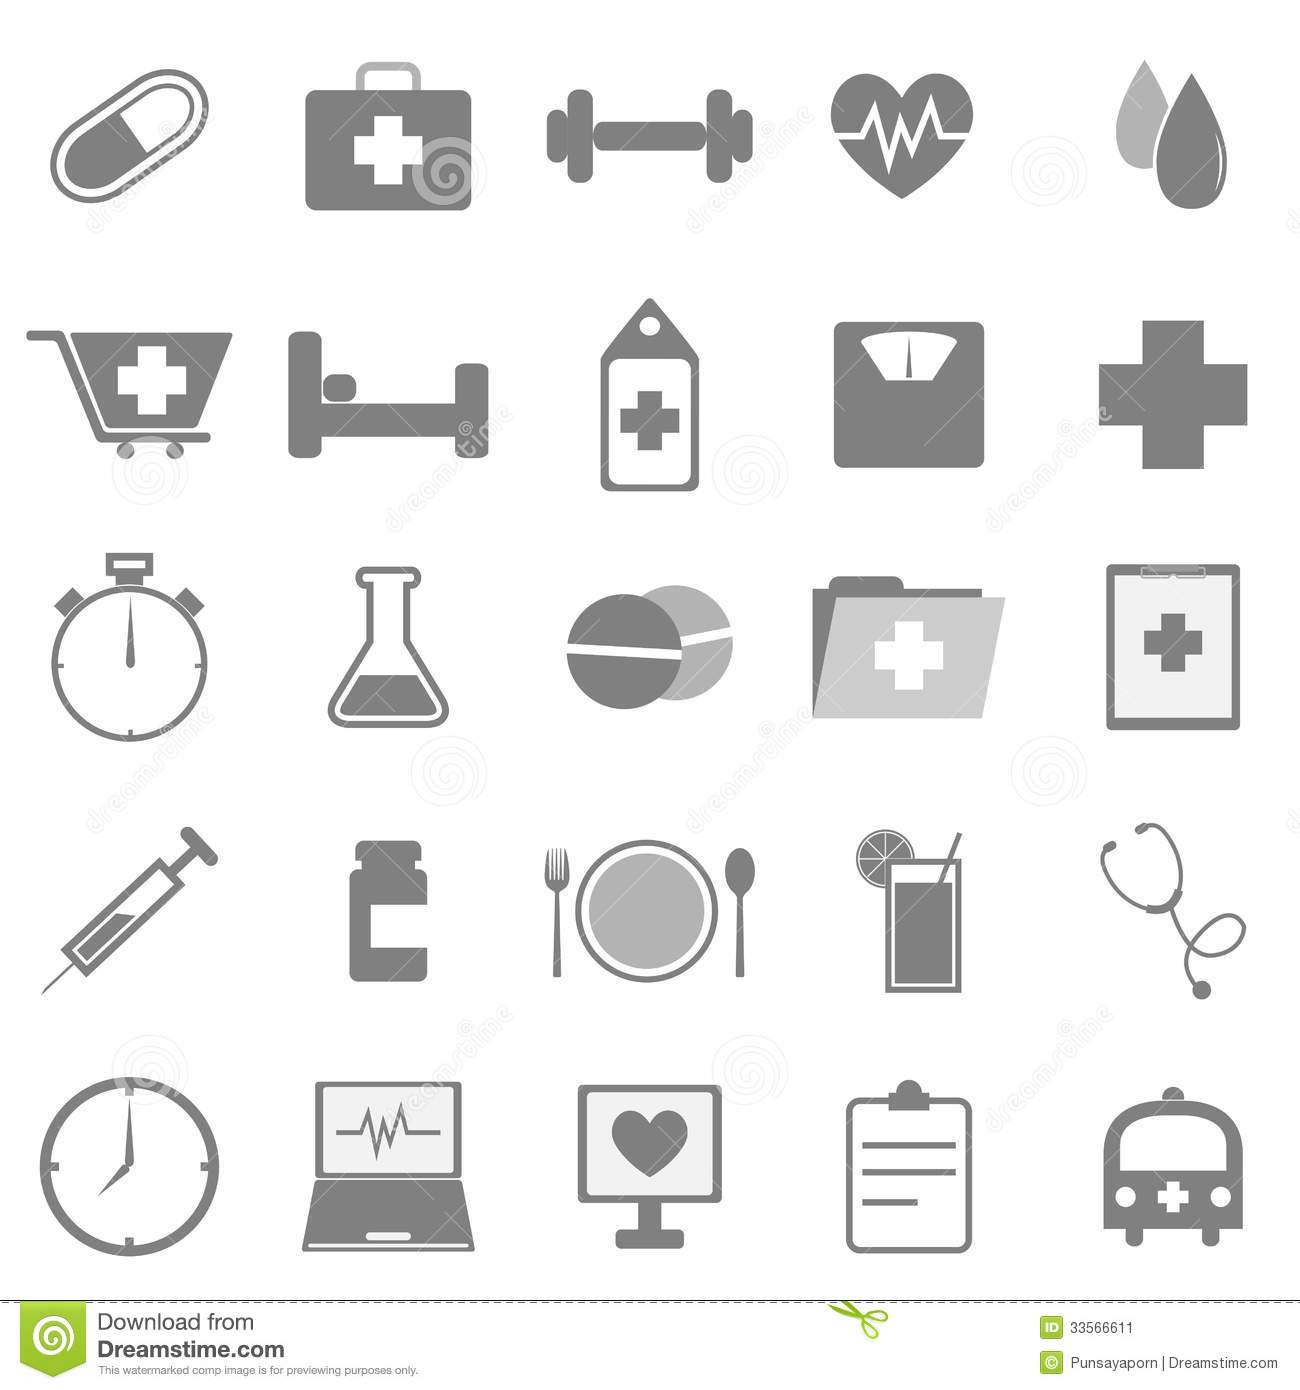 Health Icons On White Background Stock Image - Image: 33566611